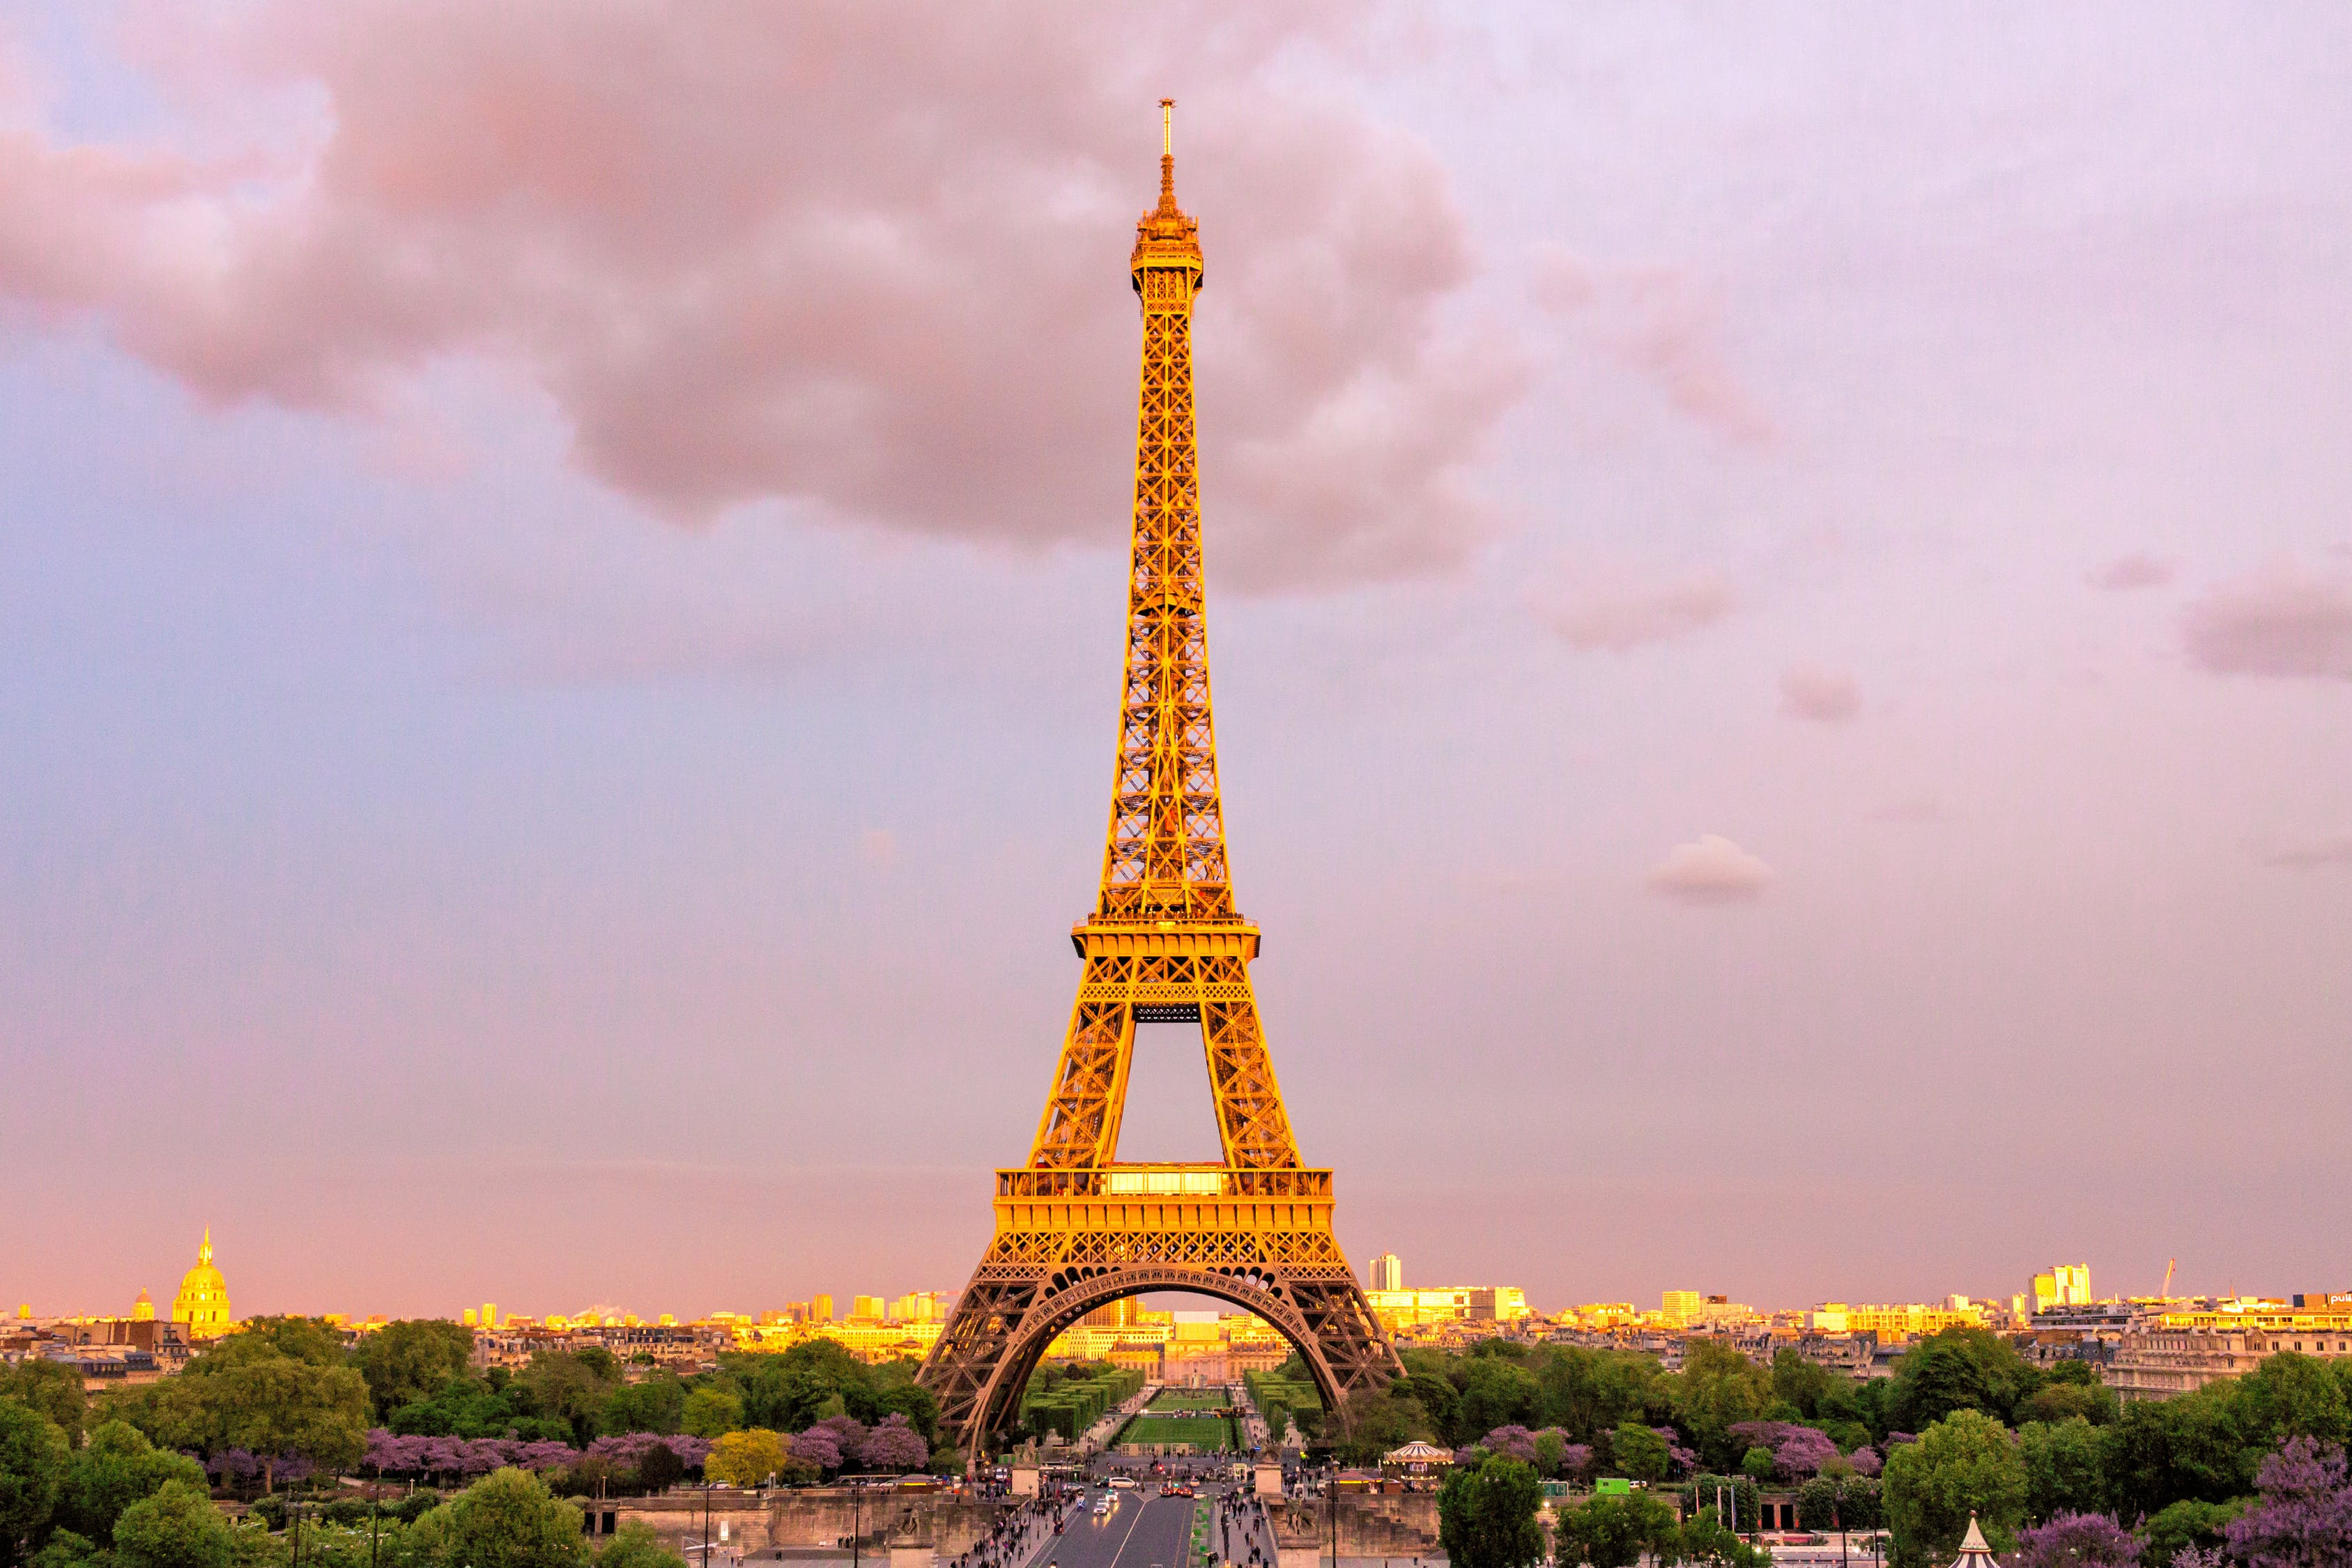 The Eifel Tower in France